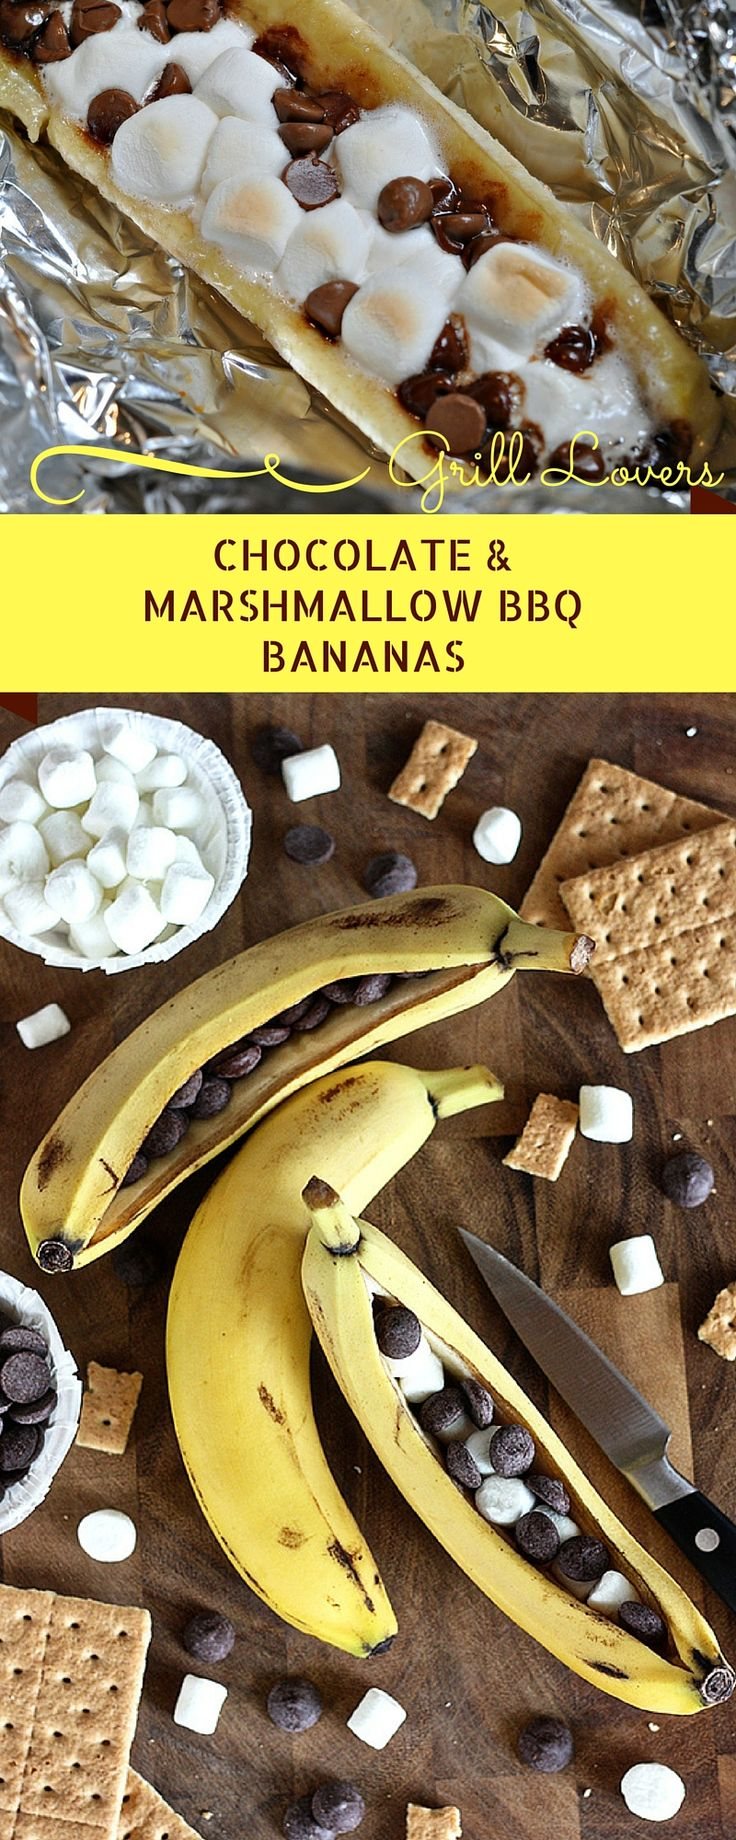 Grill Lovers' Amazing Chocolate & Marshmallow BBQ Bananas Recipe #recipes…